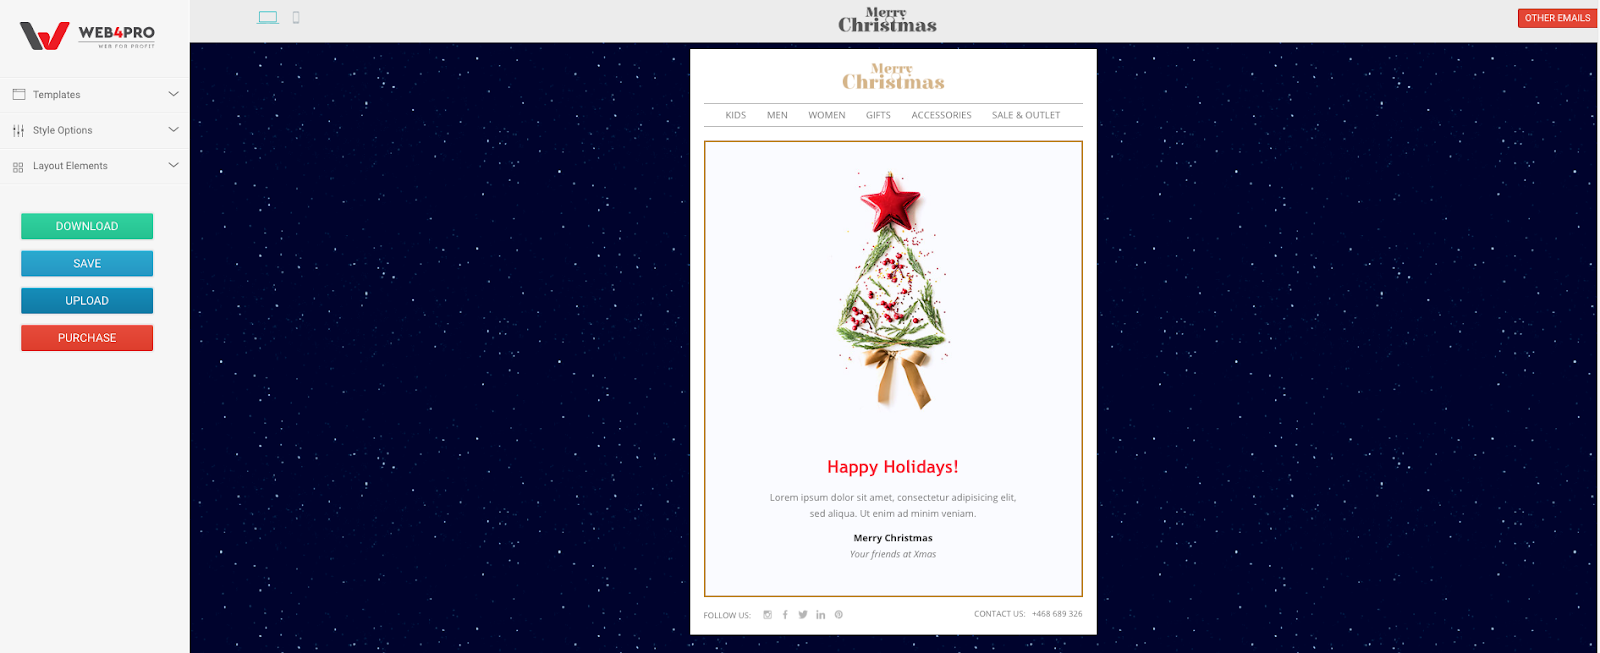 WEB4PRO Merry Christmas Email Template